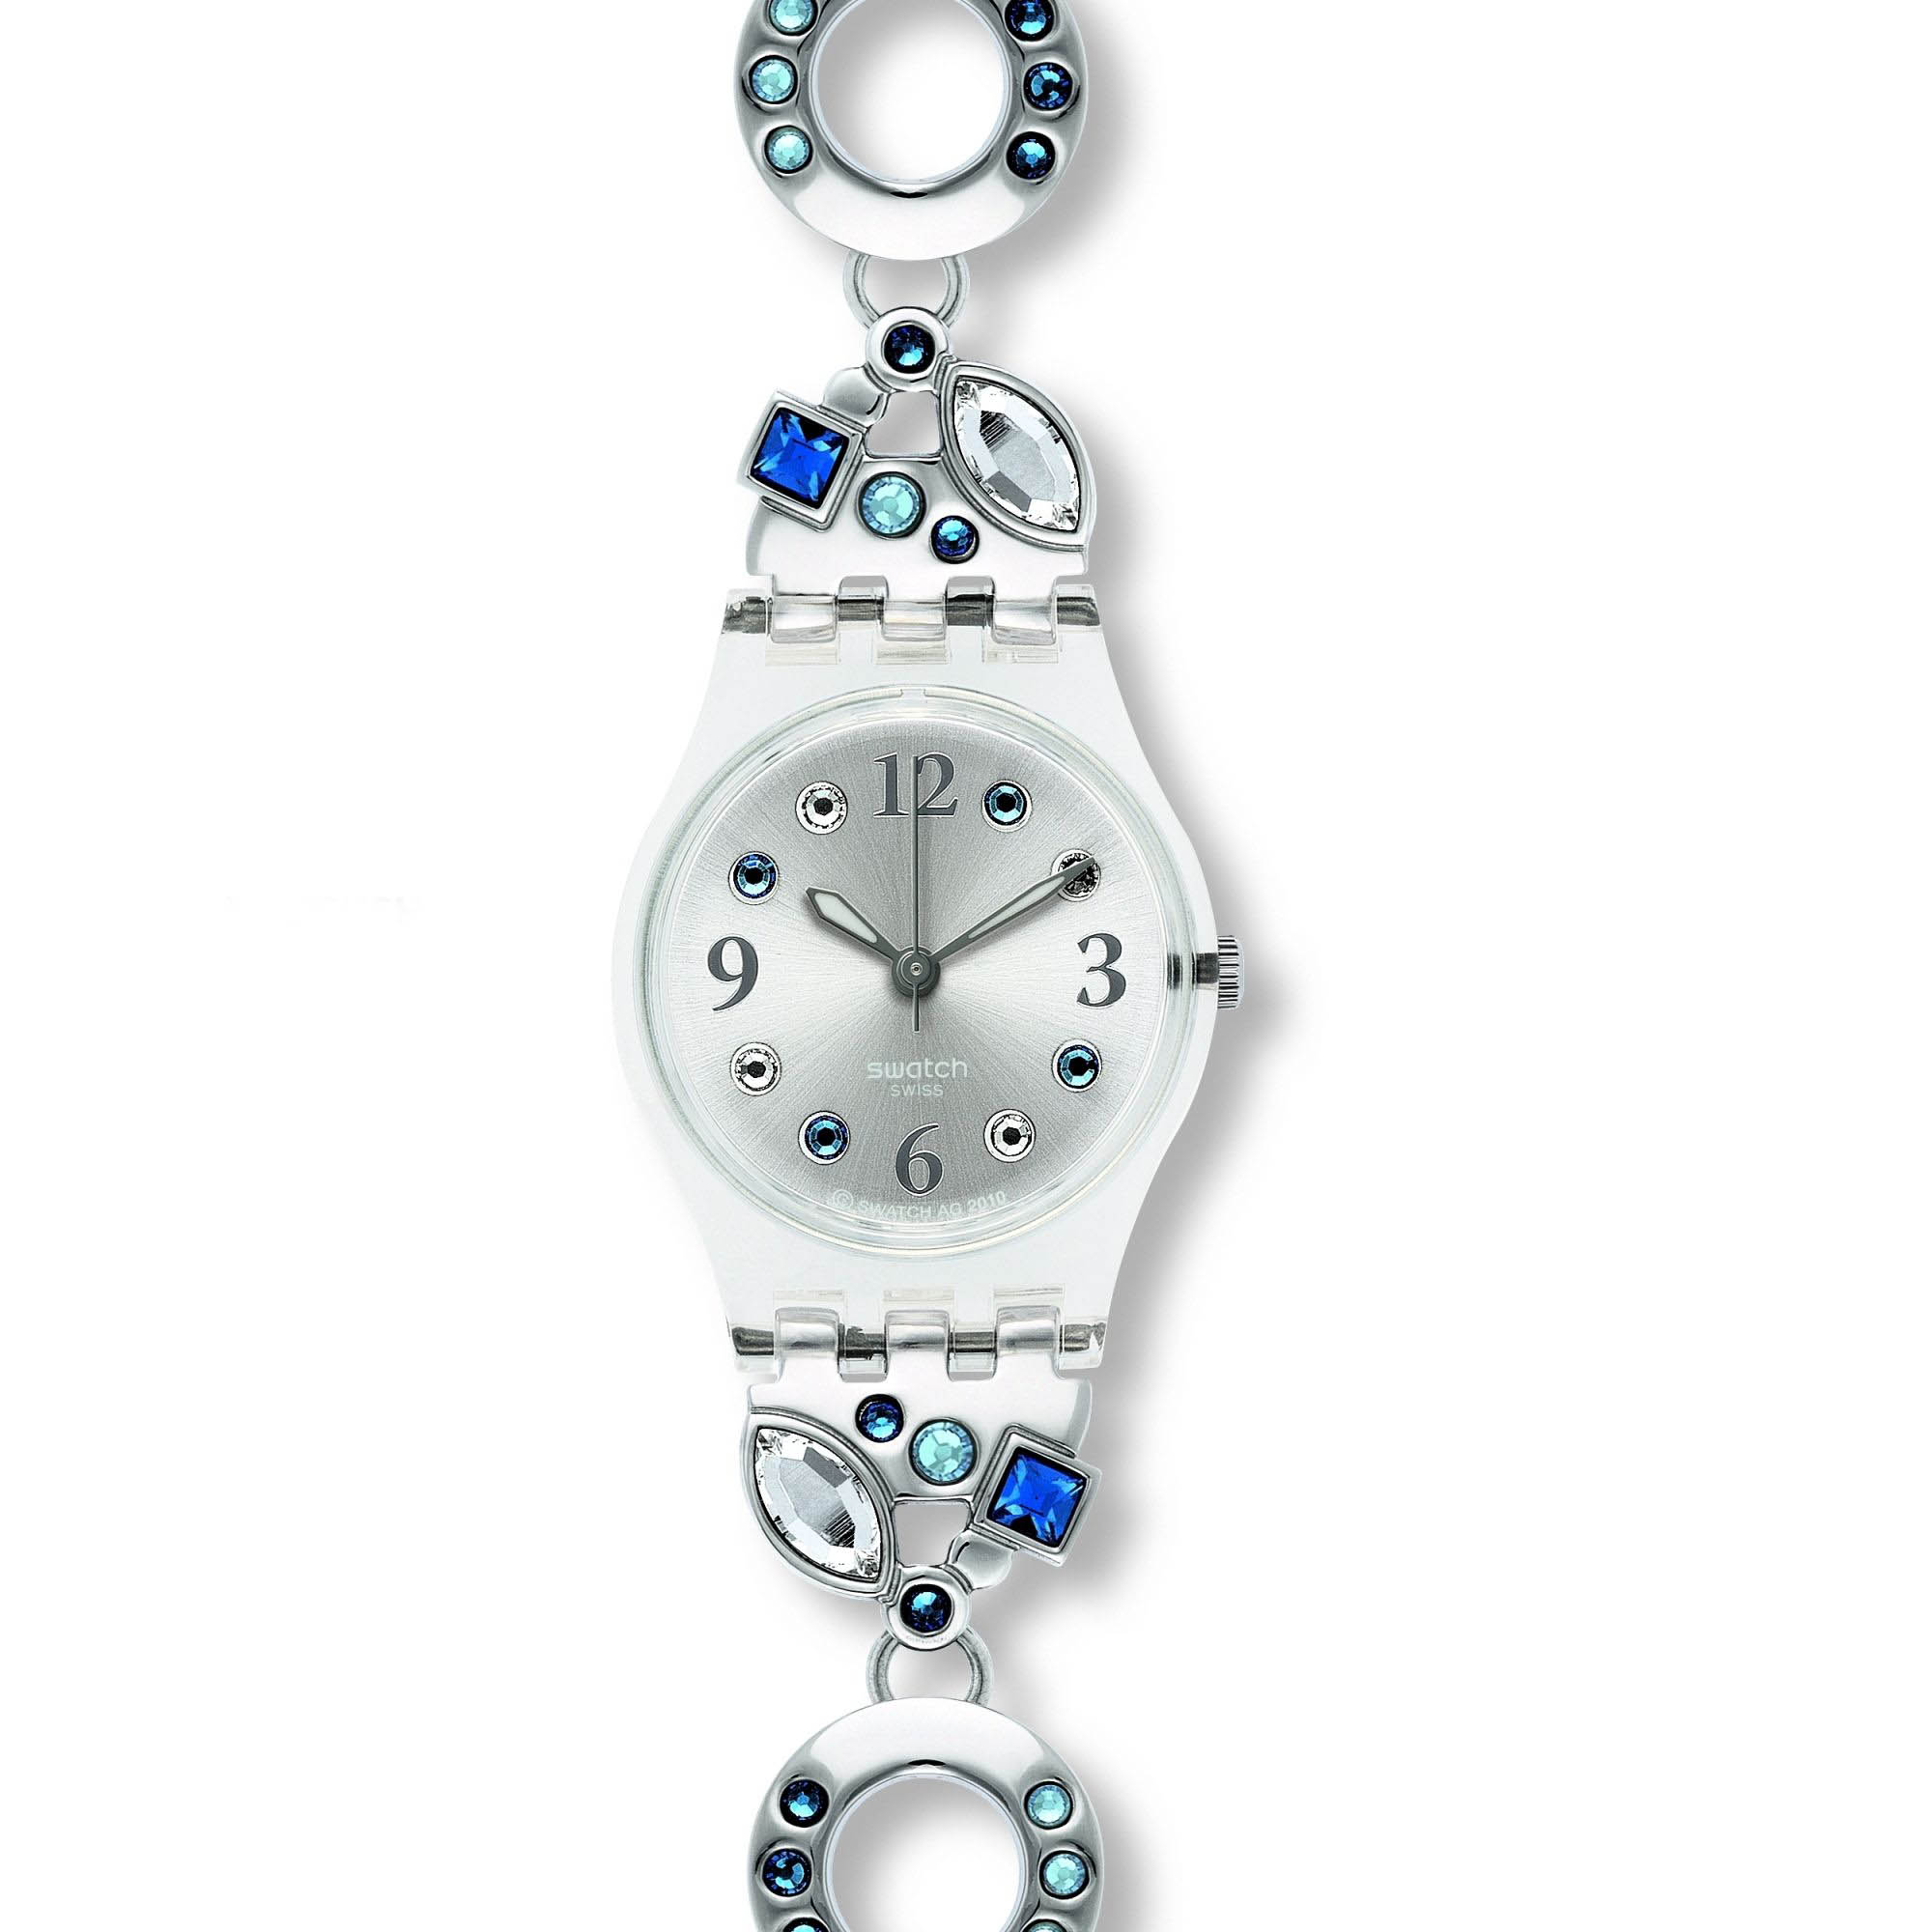 Genskie_chasy_Swatch (12)